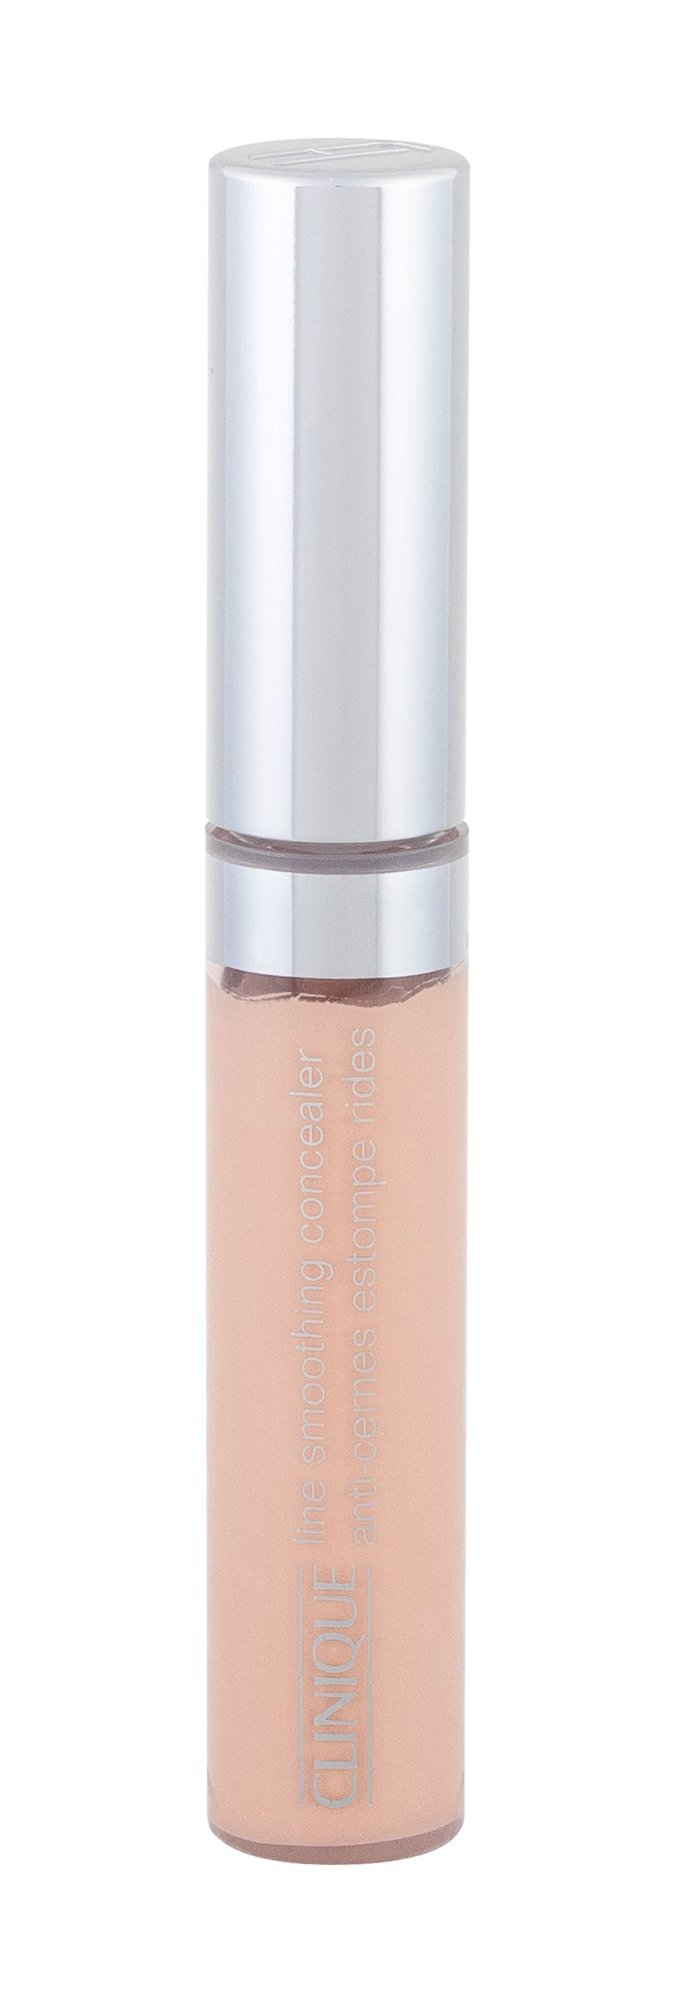 Clinique Line Smoothing Concealer Corrector 8ml 03 Moderately Fair